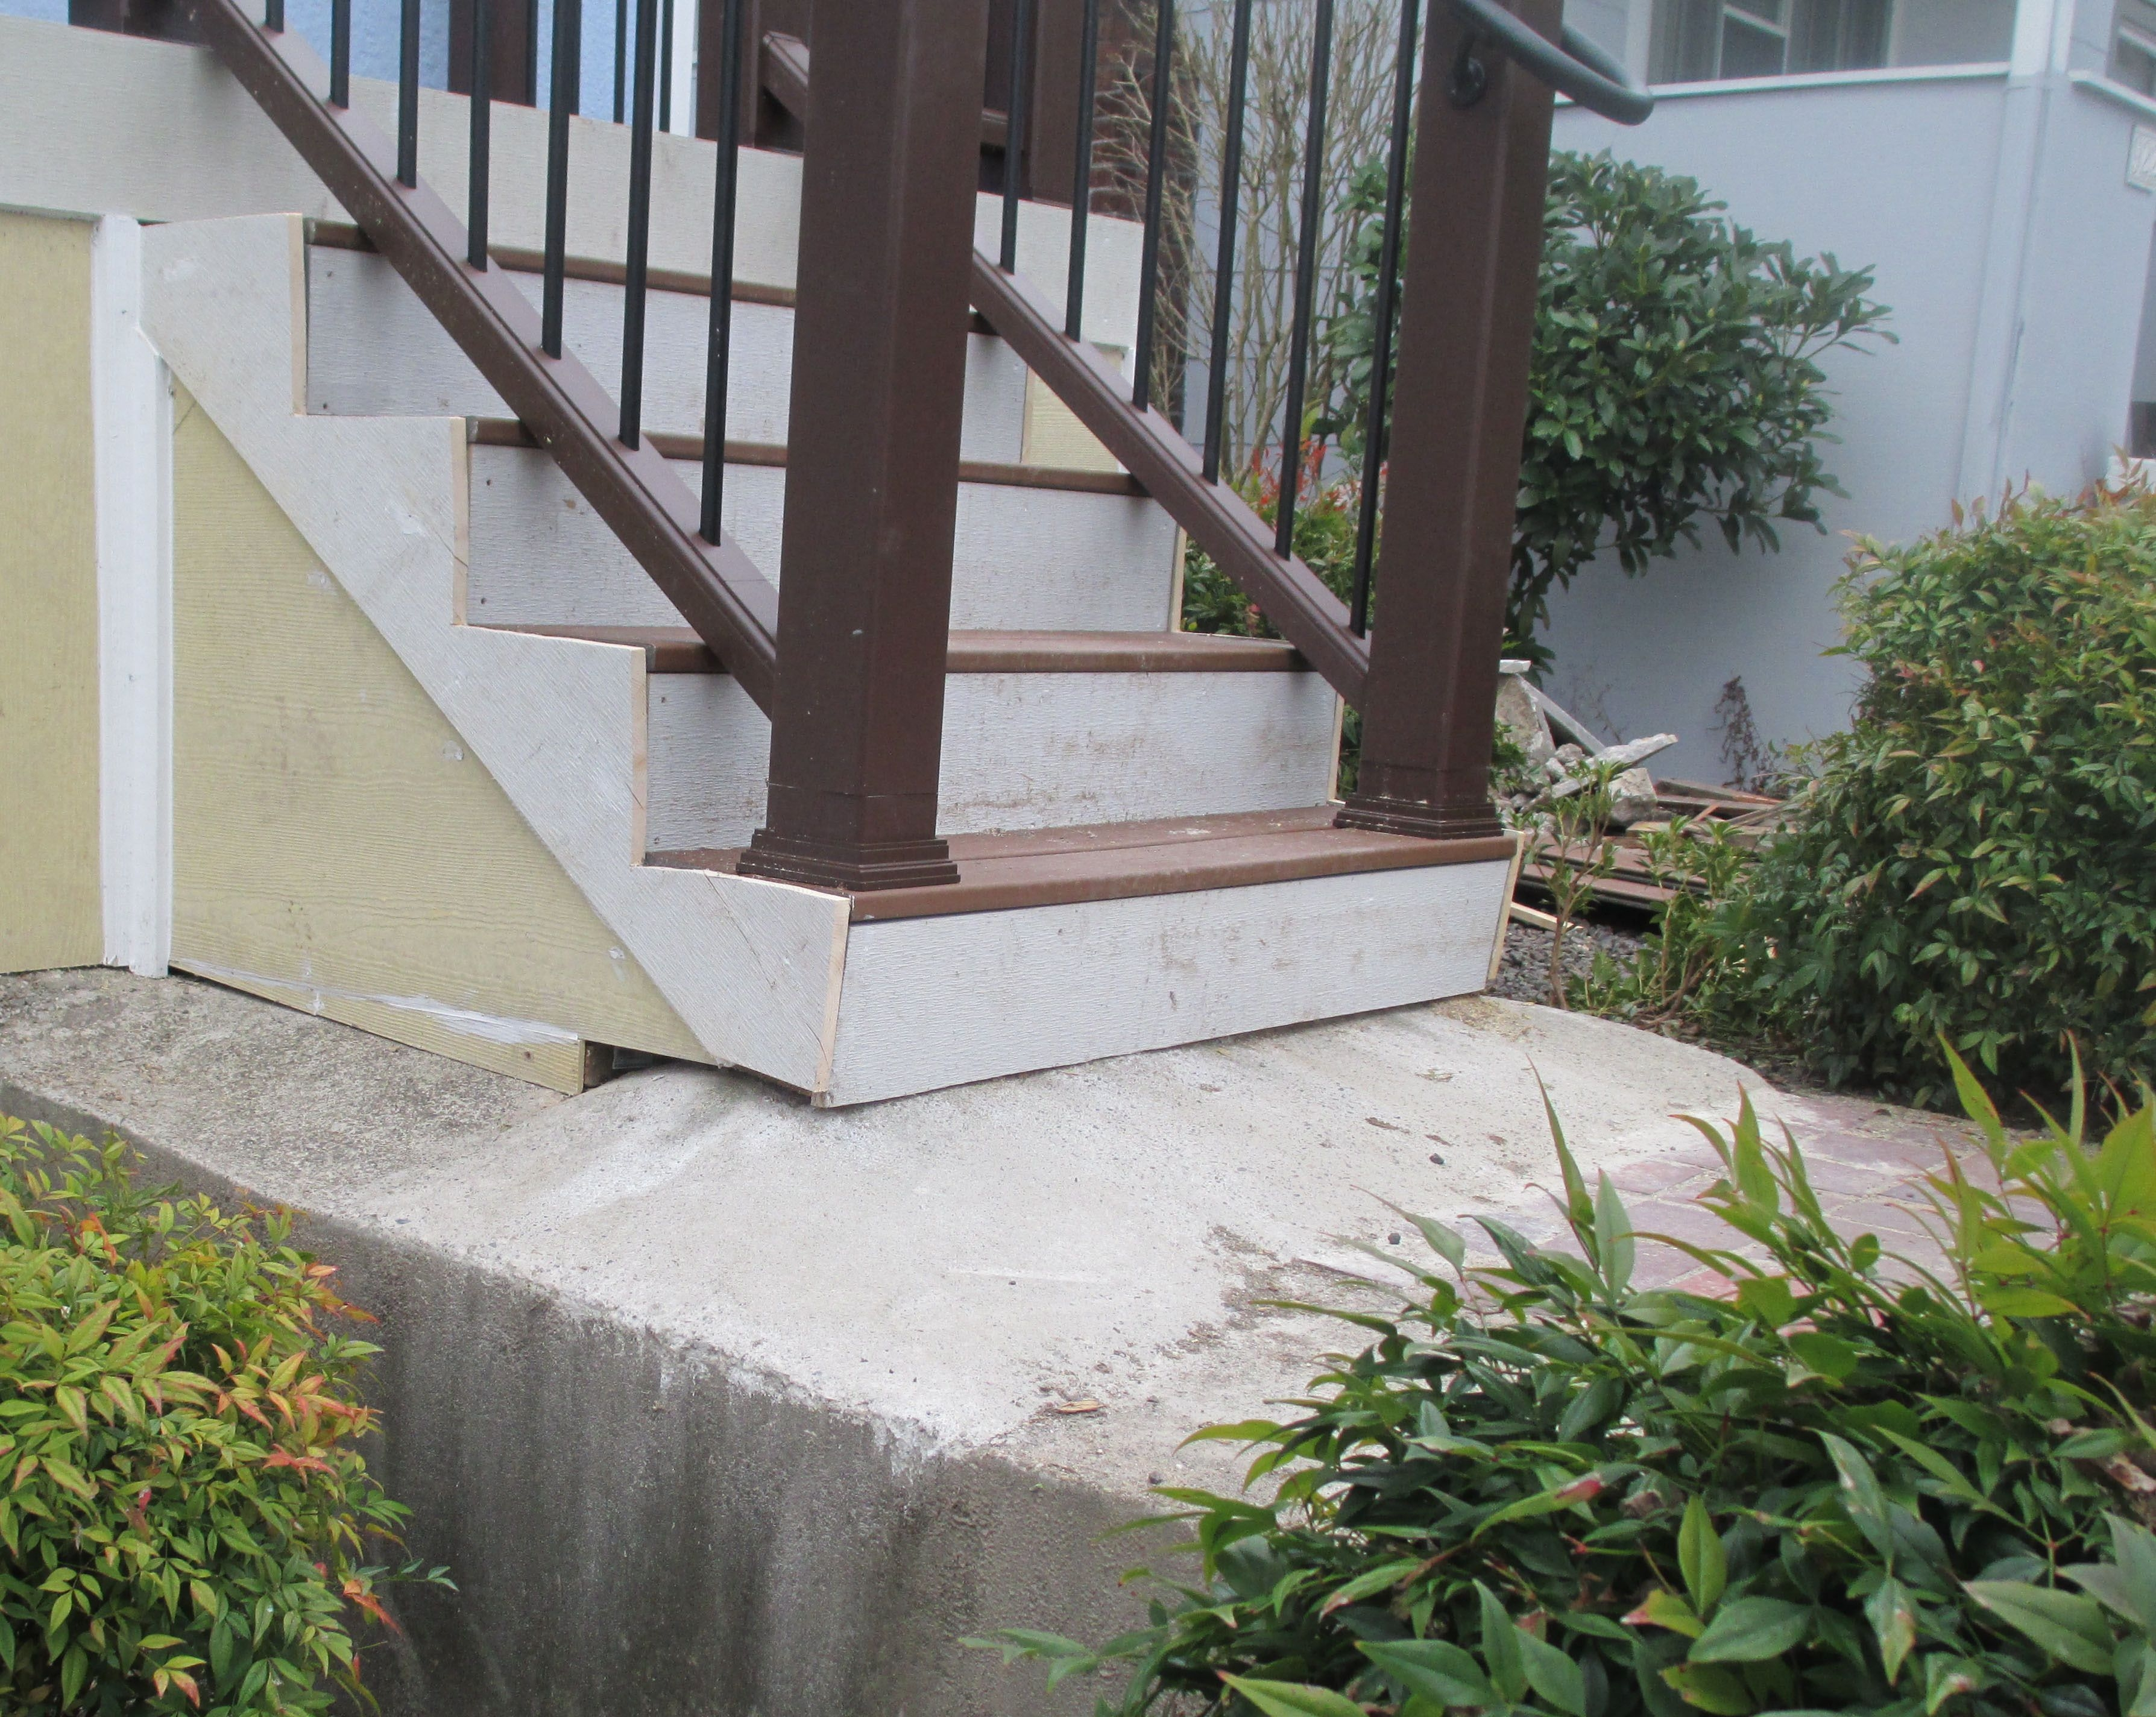 How To Avoid Rookie Mistakes When Installing Porch Steps The | Wood Railing On Concrete Steps | Stair Railing | Diy | Wooden | Railing Mode | Staircase